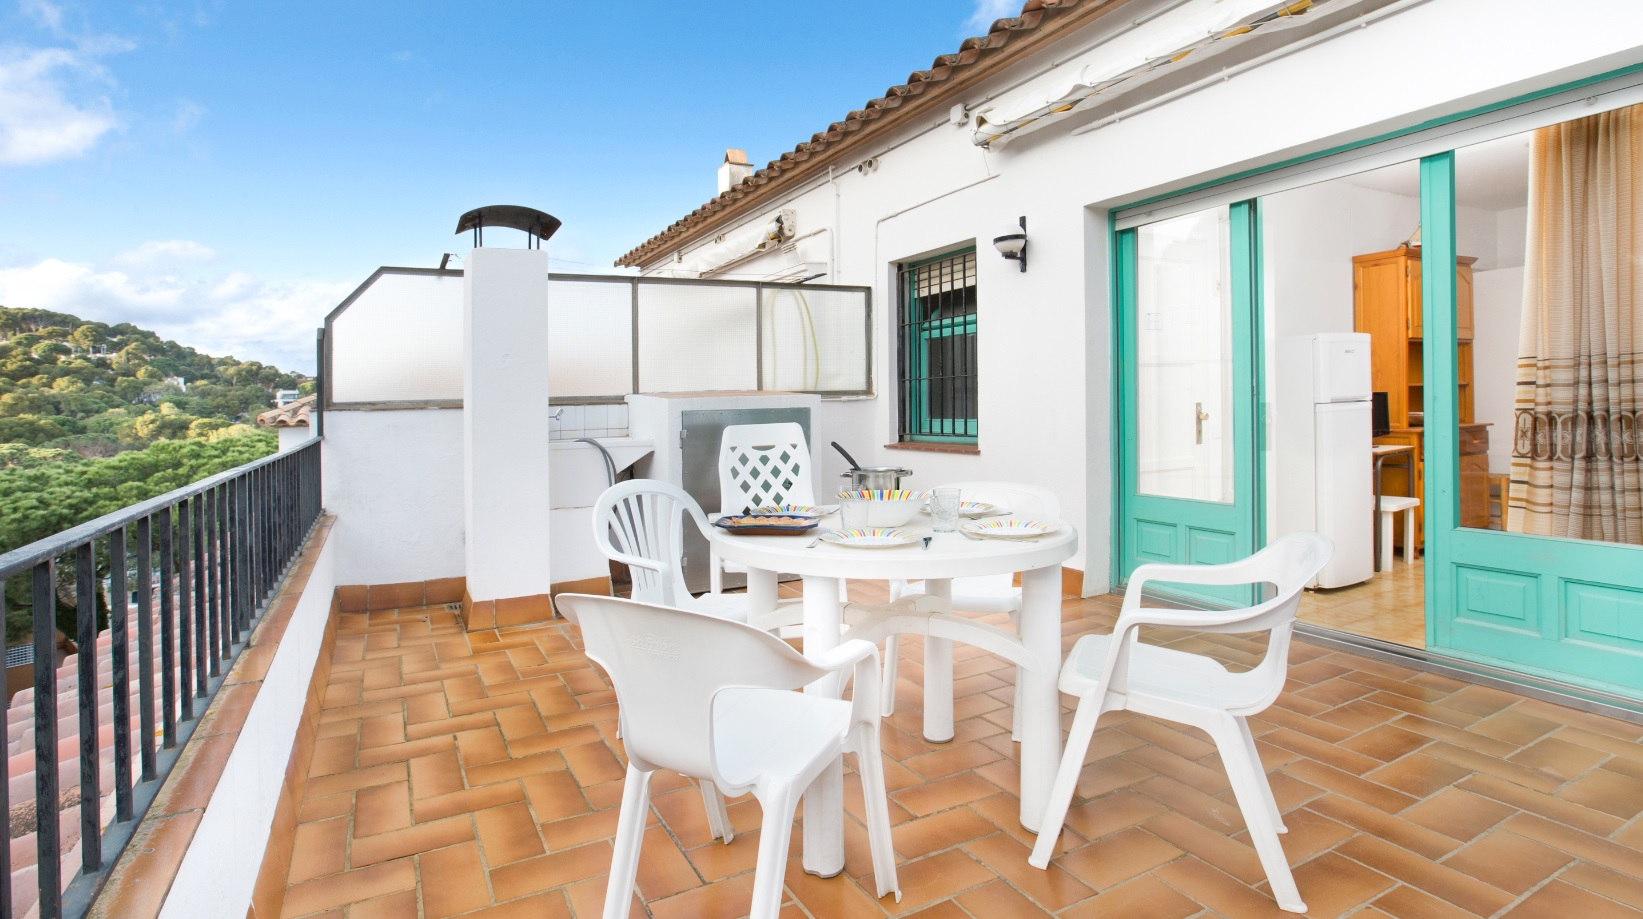 Rosa 5, Apartment in Llafranc, on the Costa Brava, Spain for 4 persons...